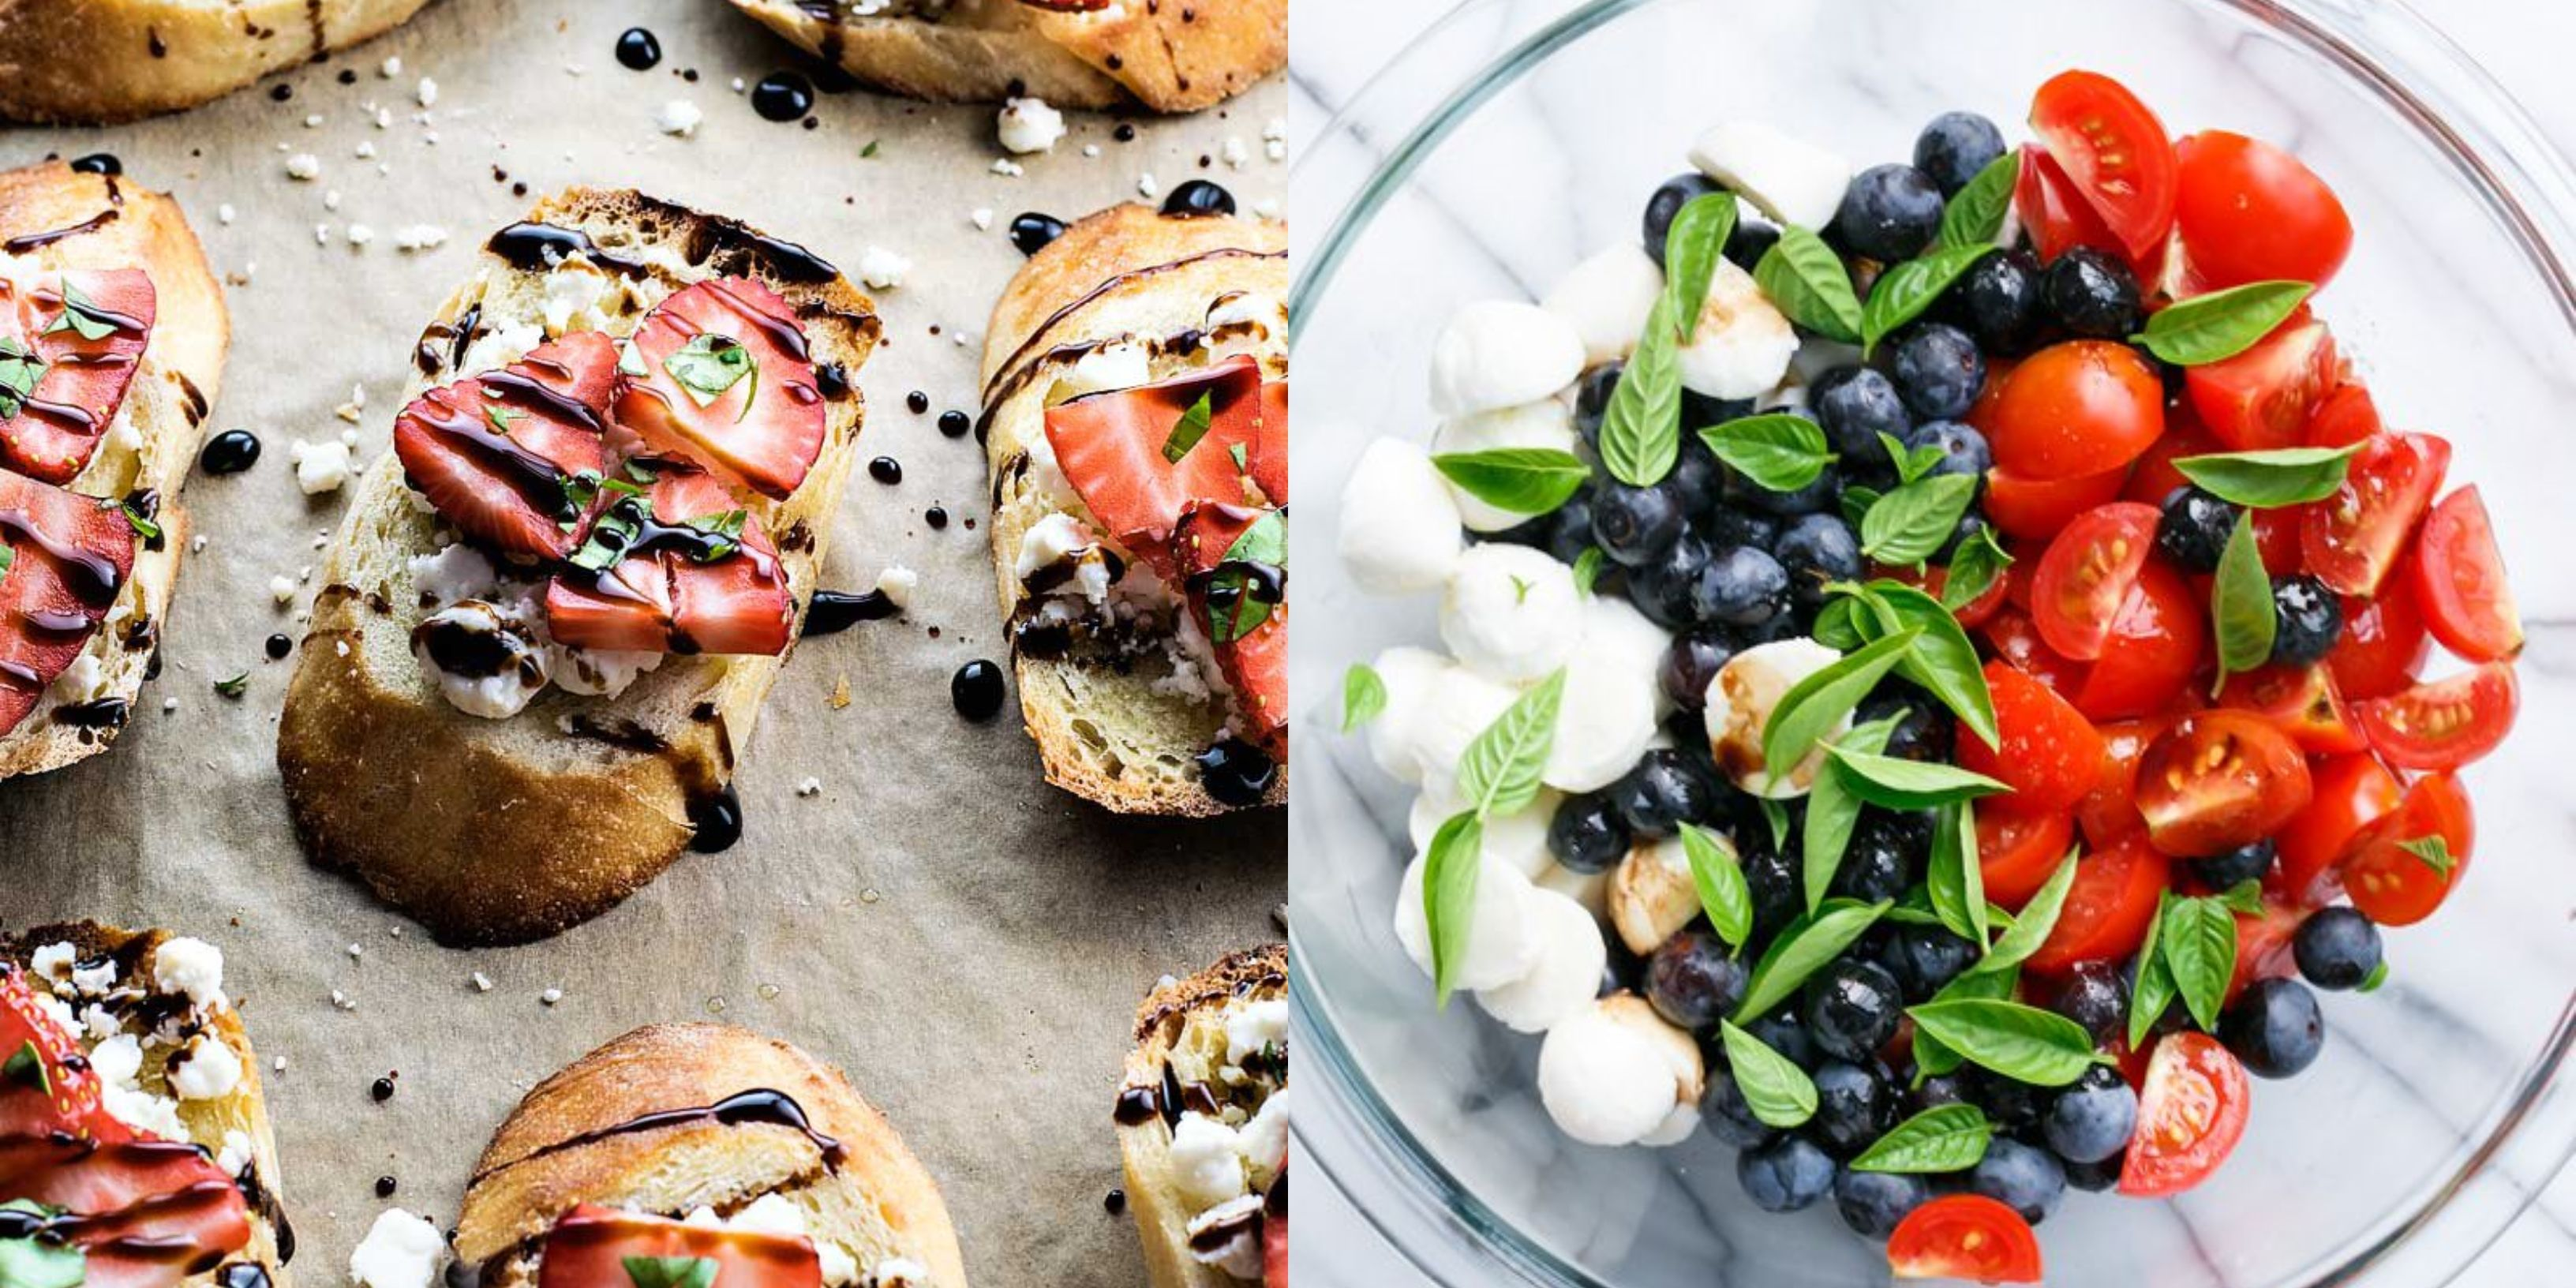 25 Easy 4th of July Appetizers - Best Recipes for Fourth of